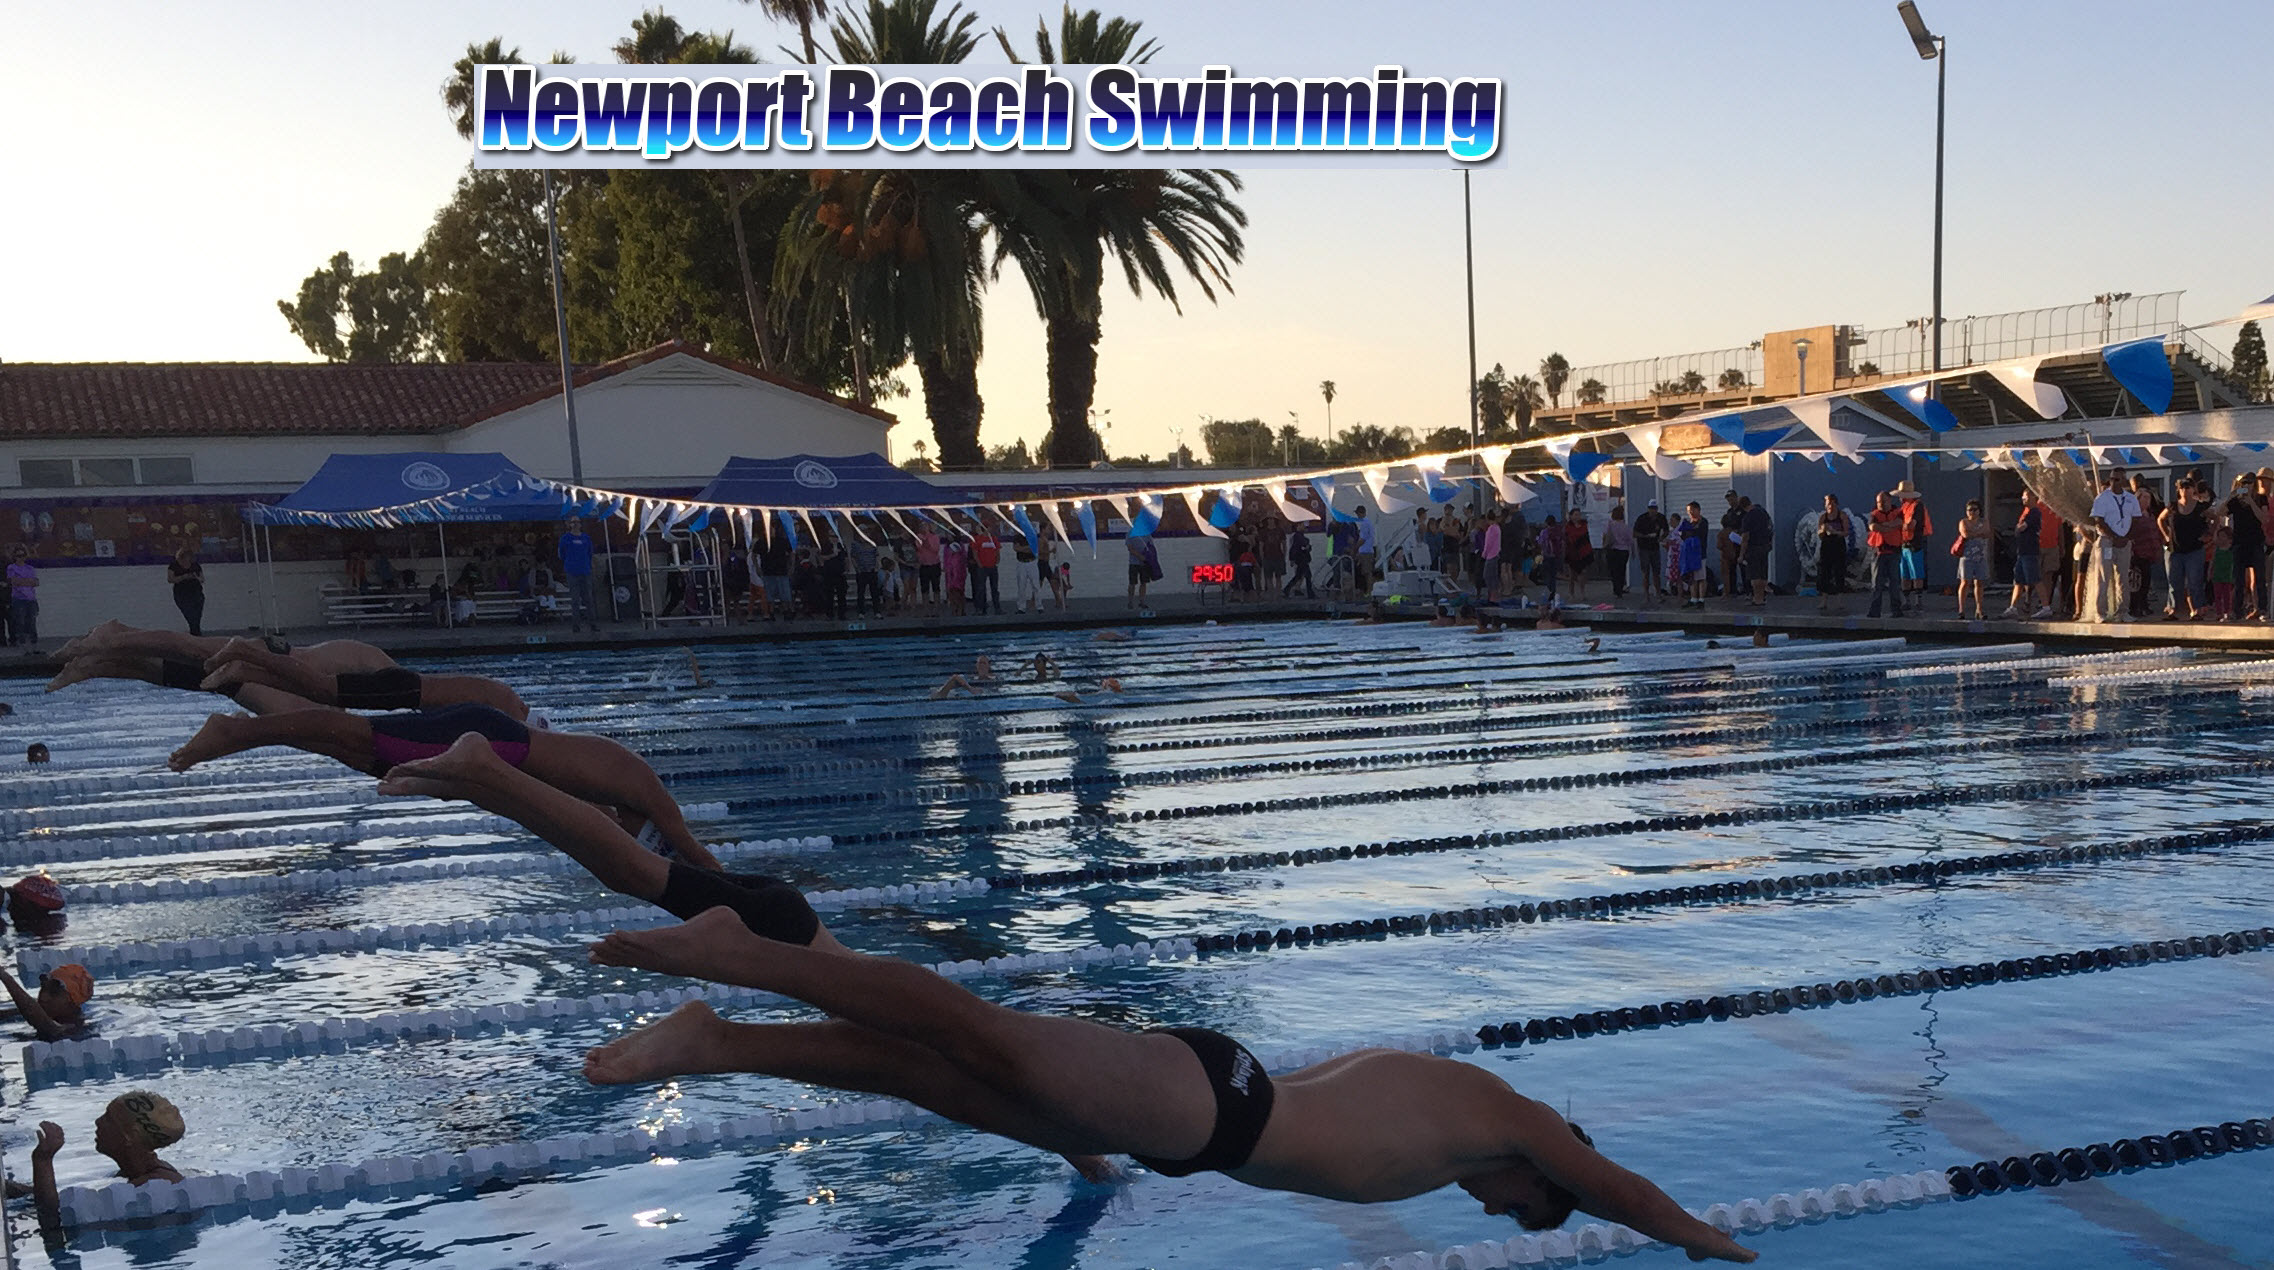 Newport Beach Swimming Swim Fins 101